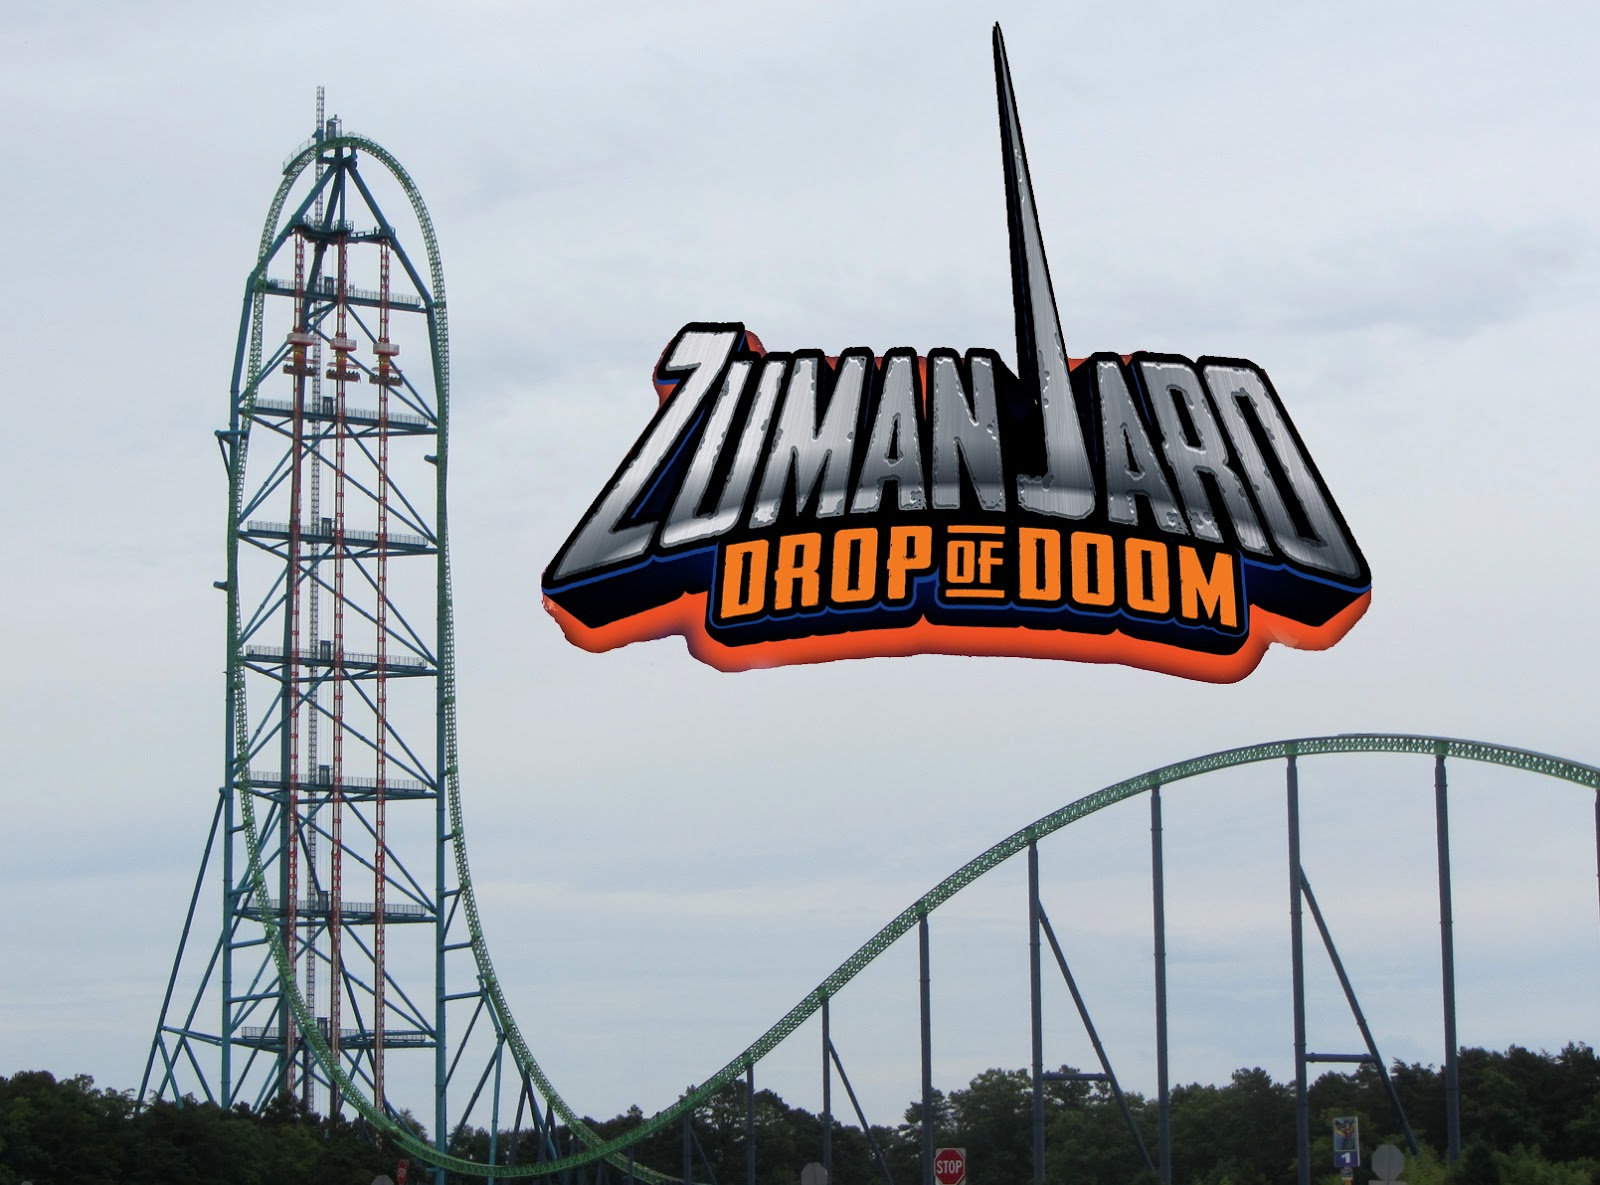 Newsplusnotes Dropping In On Zumanjaro Drop Of Doom At Six Flags